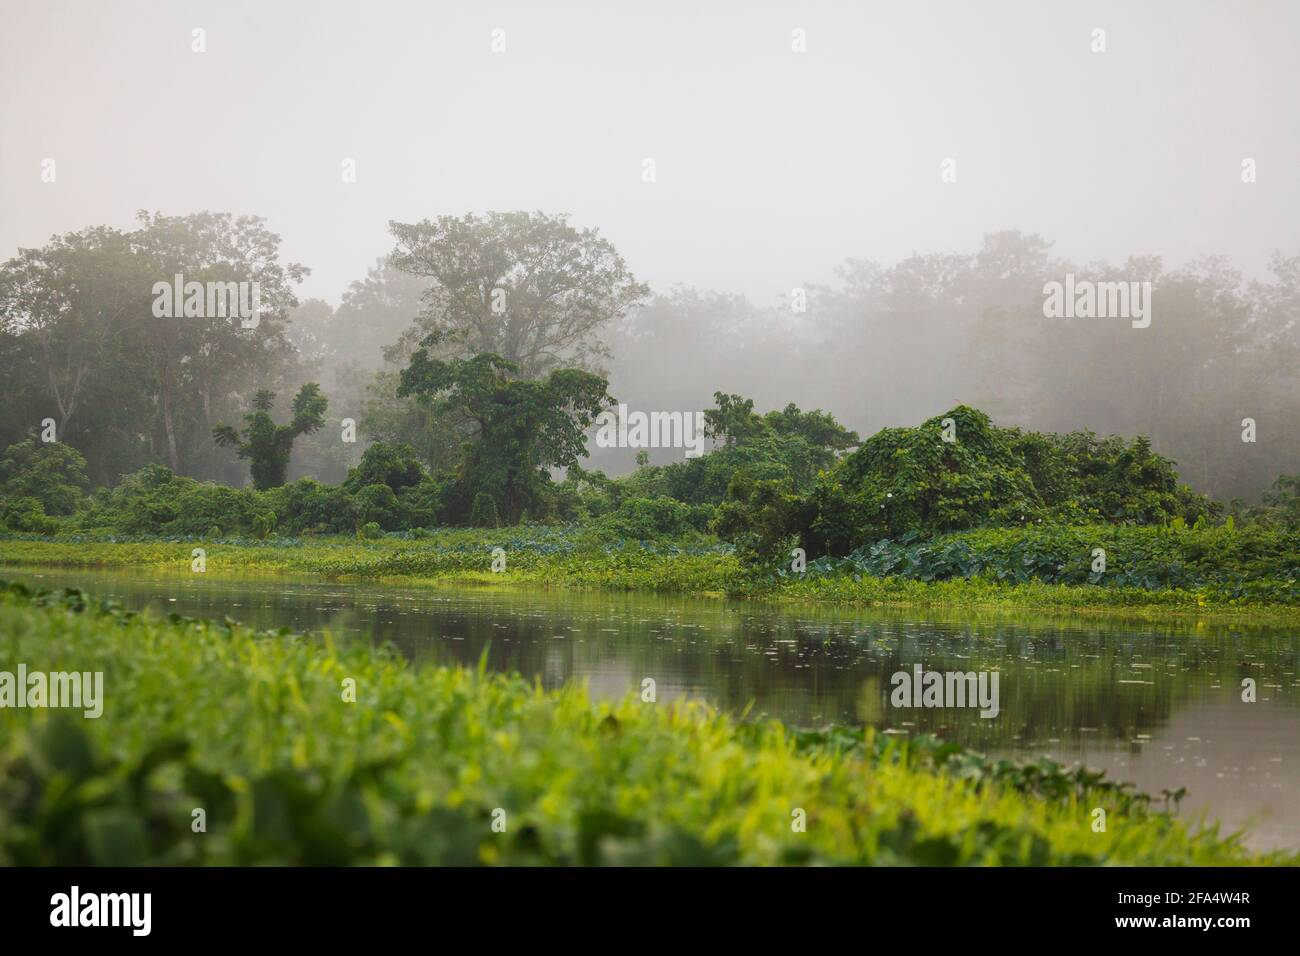 Misty rainforest in early morning light along Rio Chagres in Soberania national park, Republic of Panama. Stock Photo